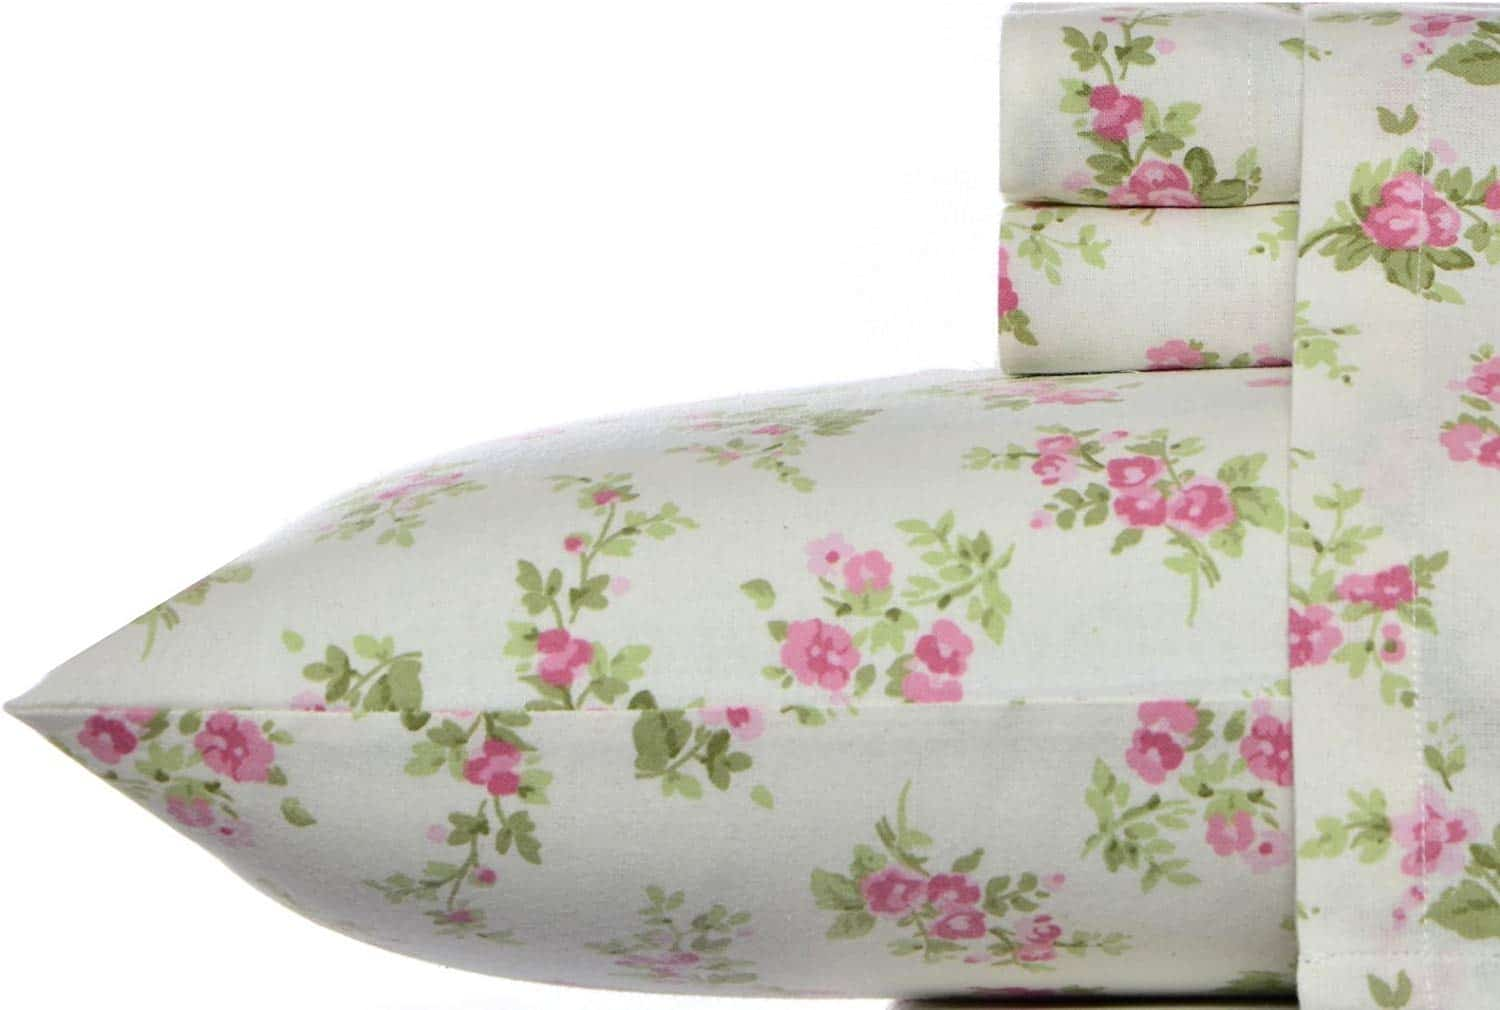 Laura Ashley Flannel Sheet Set, Queen, Audrey